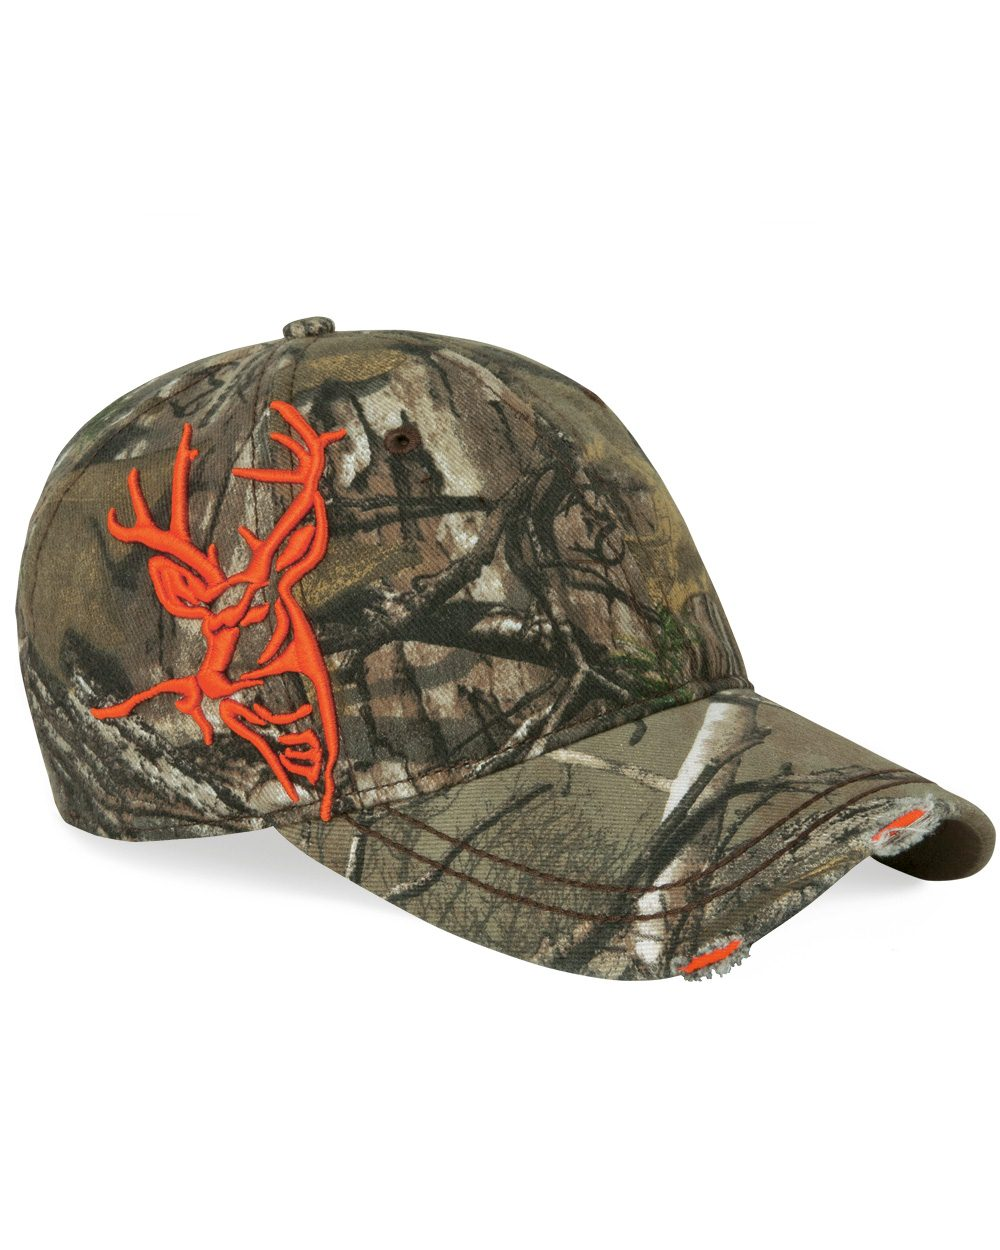 DRI DUCK 3D Buck Caps - 3307